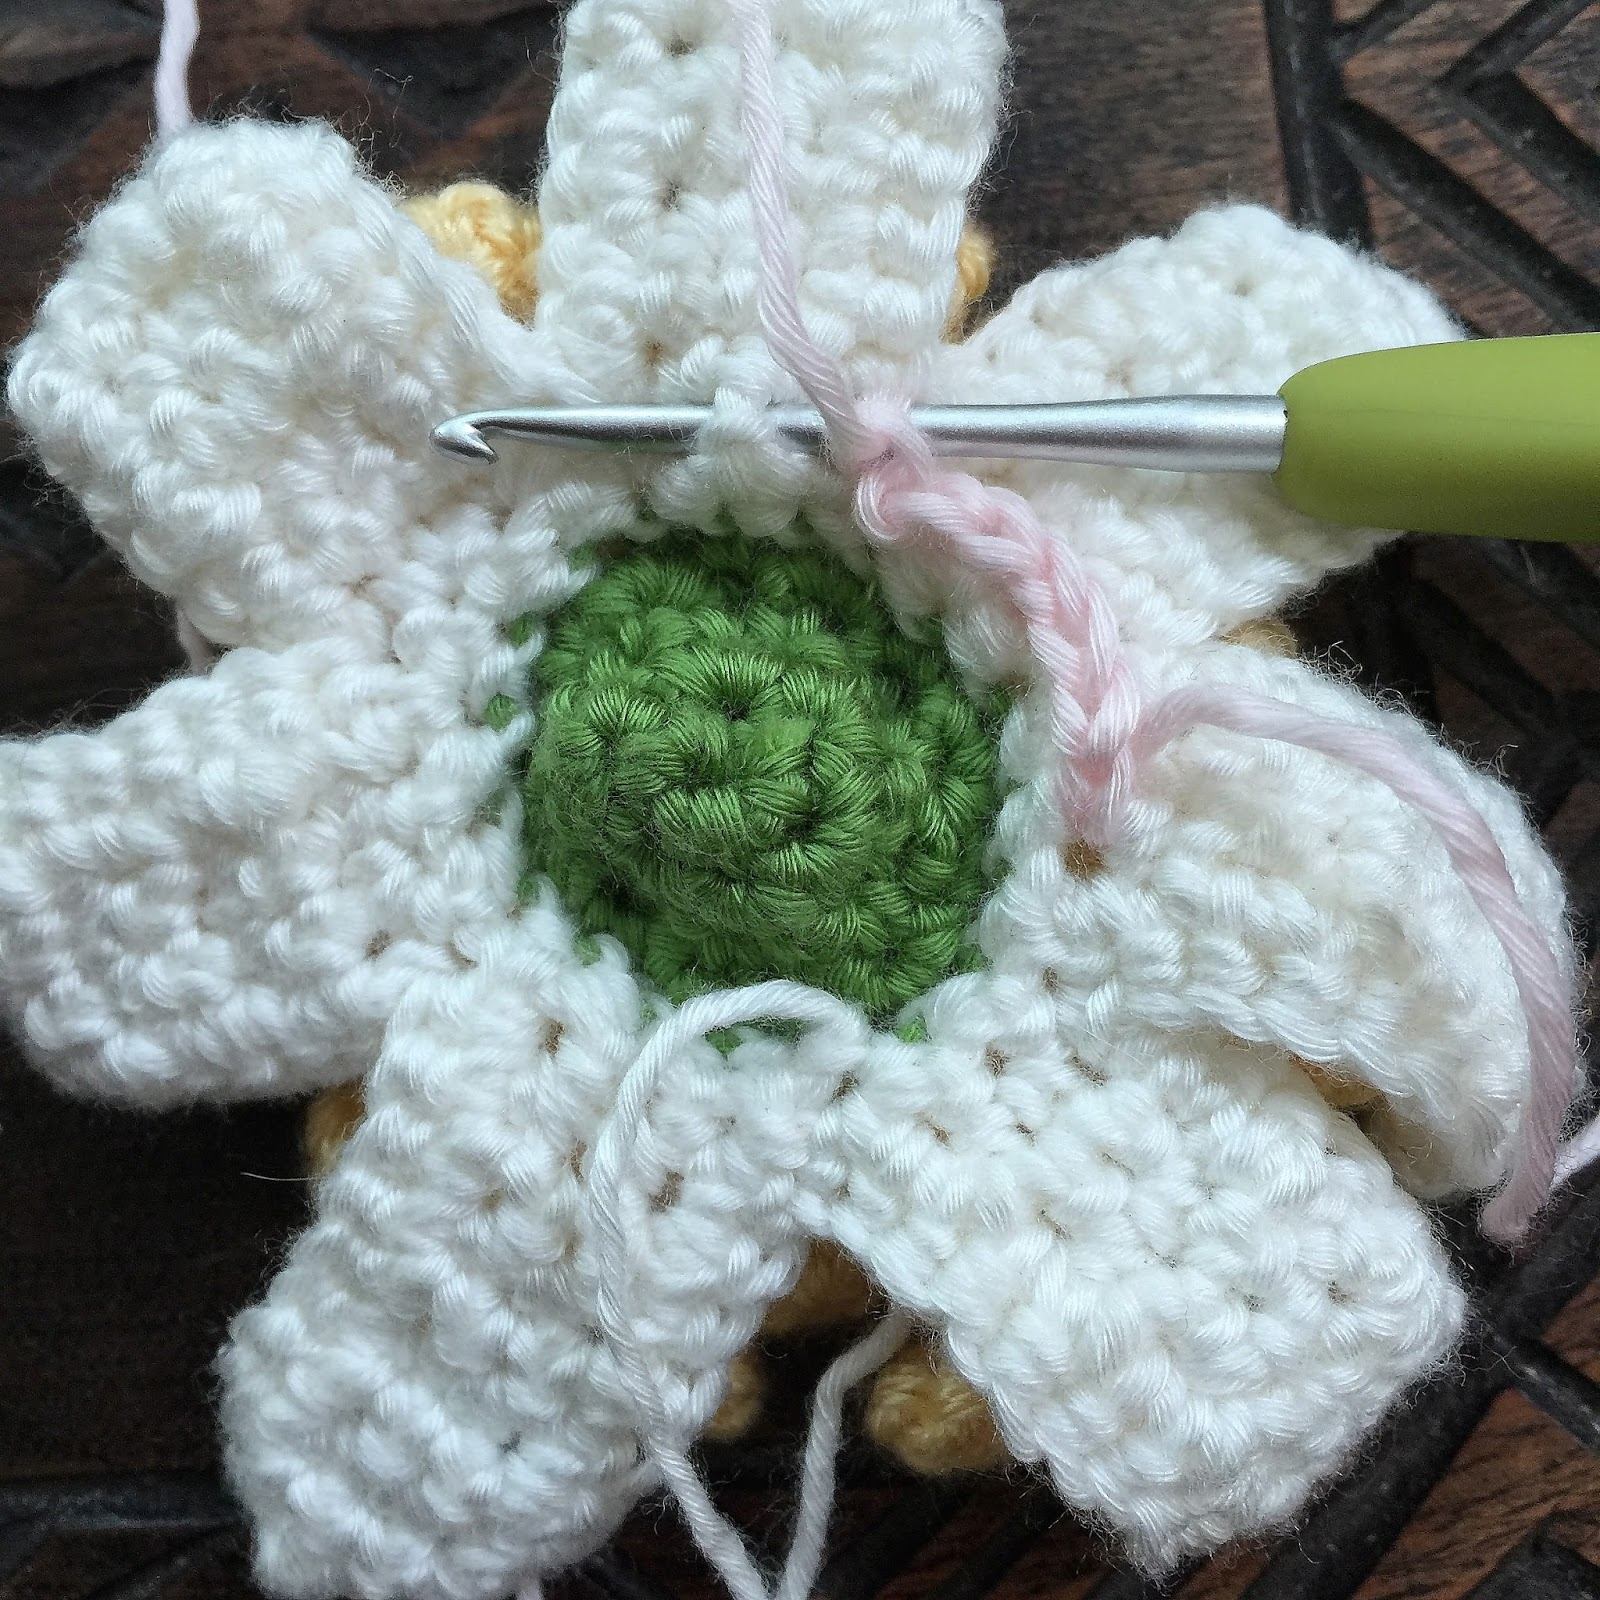 Crochet rockstar lotus crochet flower photo tutorial r5 pick up light pink bpsc into the center back of the previous petal izmirmasajfo Gallery